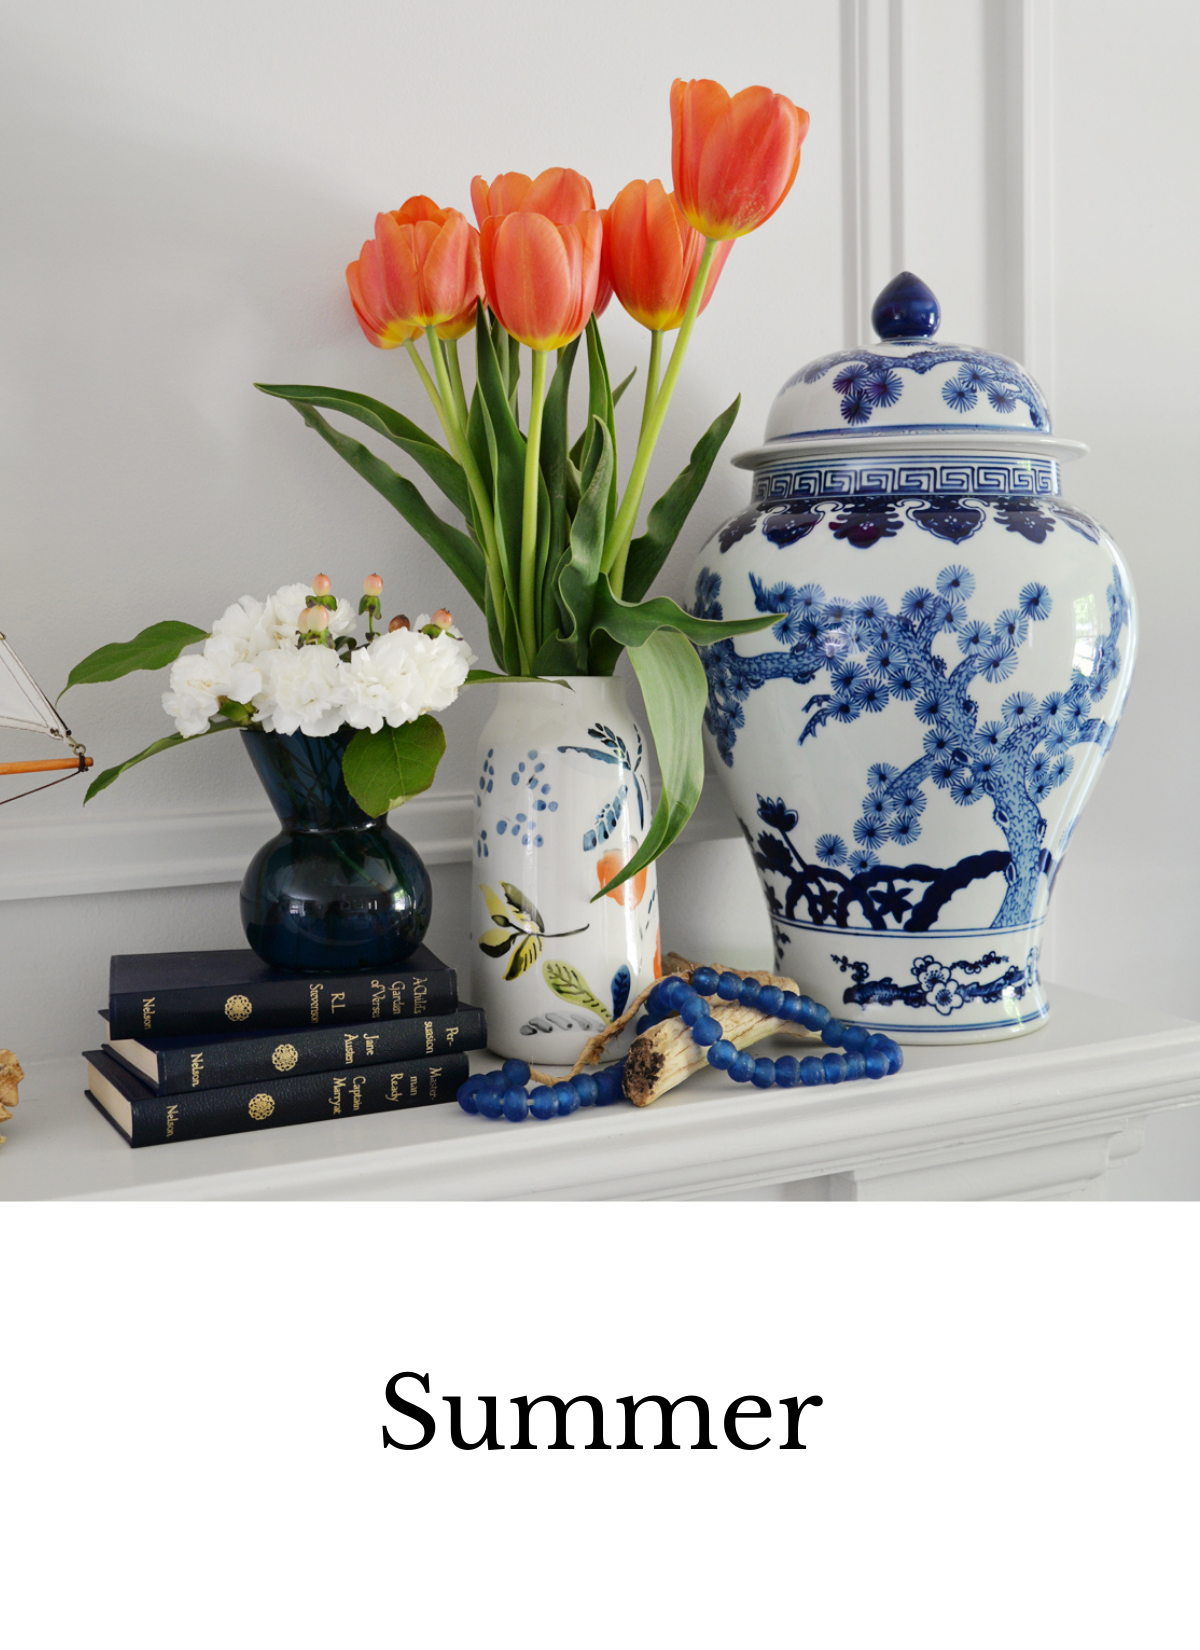 summer home projects, summer home decor, summer decorating ideas